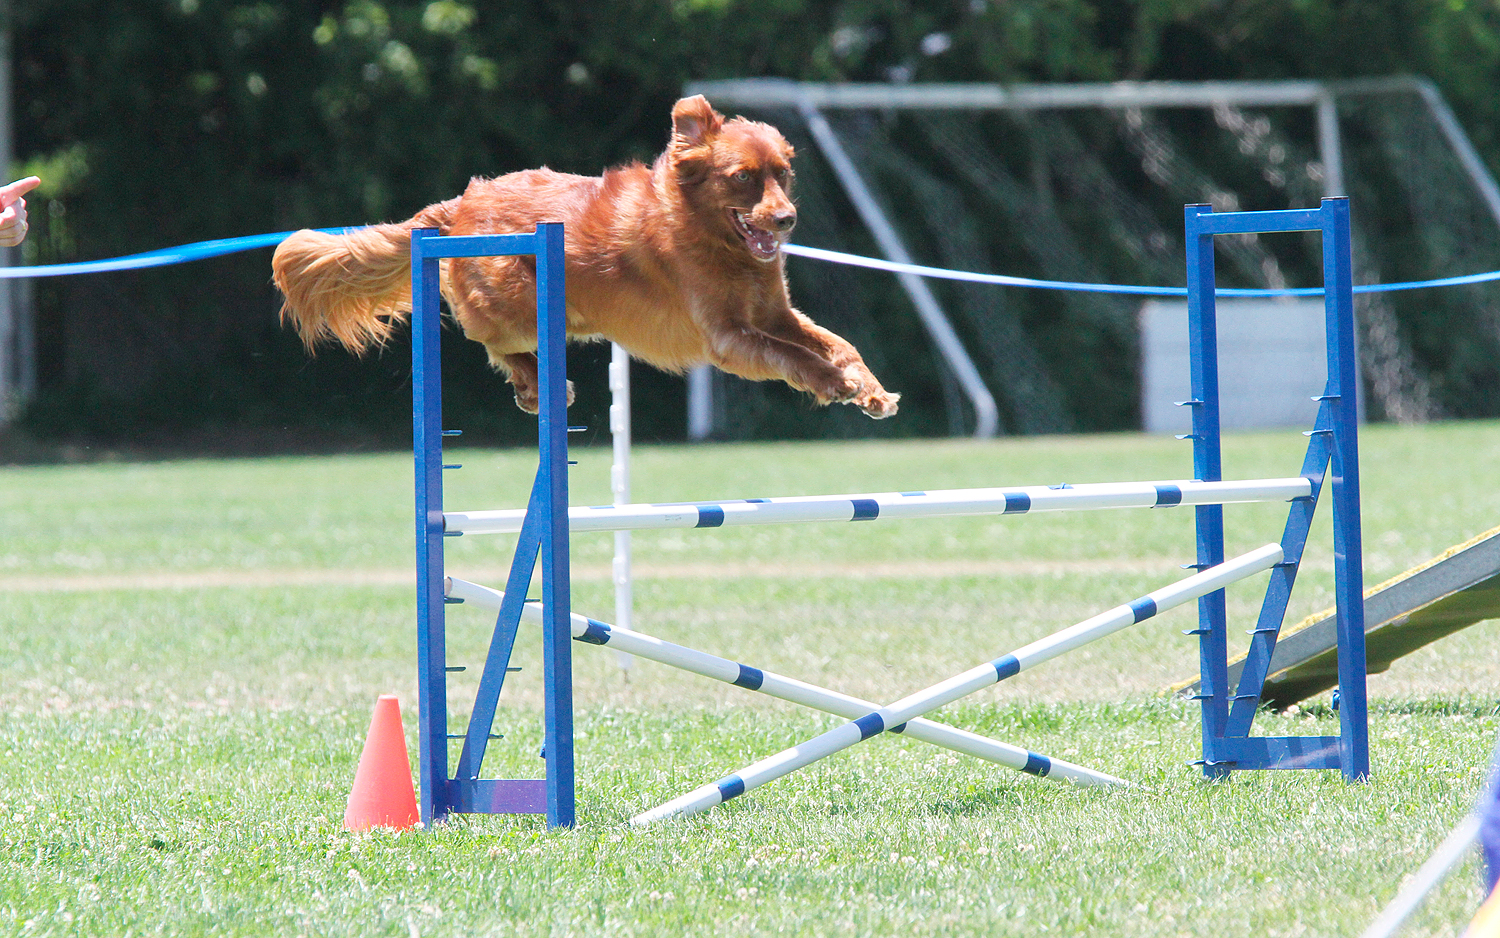 Tuli, Javahill's Red Flame MX MXJ OF CGCA at the Monterey Bay Agility Club AKC agility trial during his Novice agility title run. Photo by Dog Gone Digital.